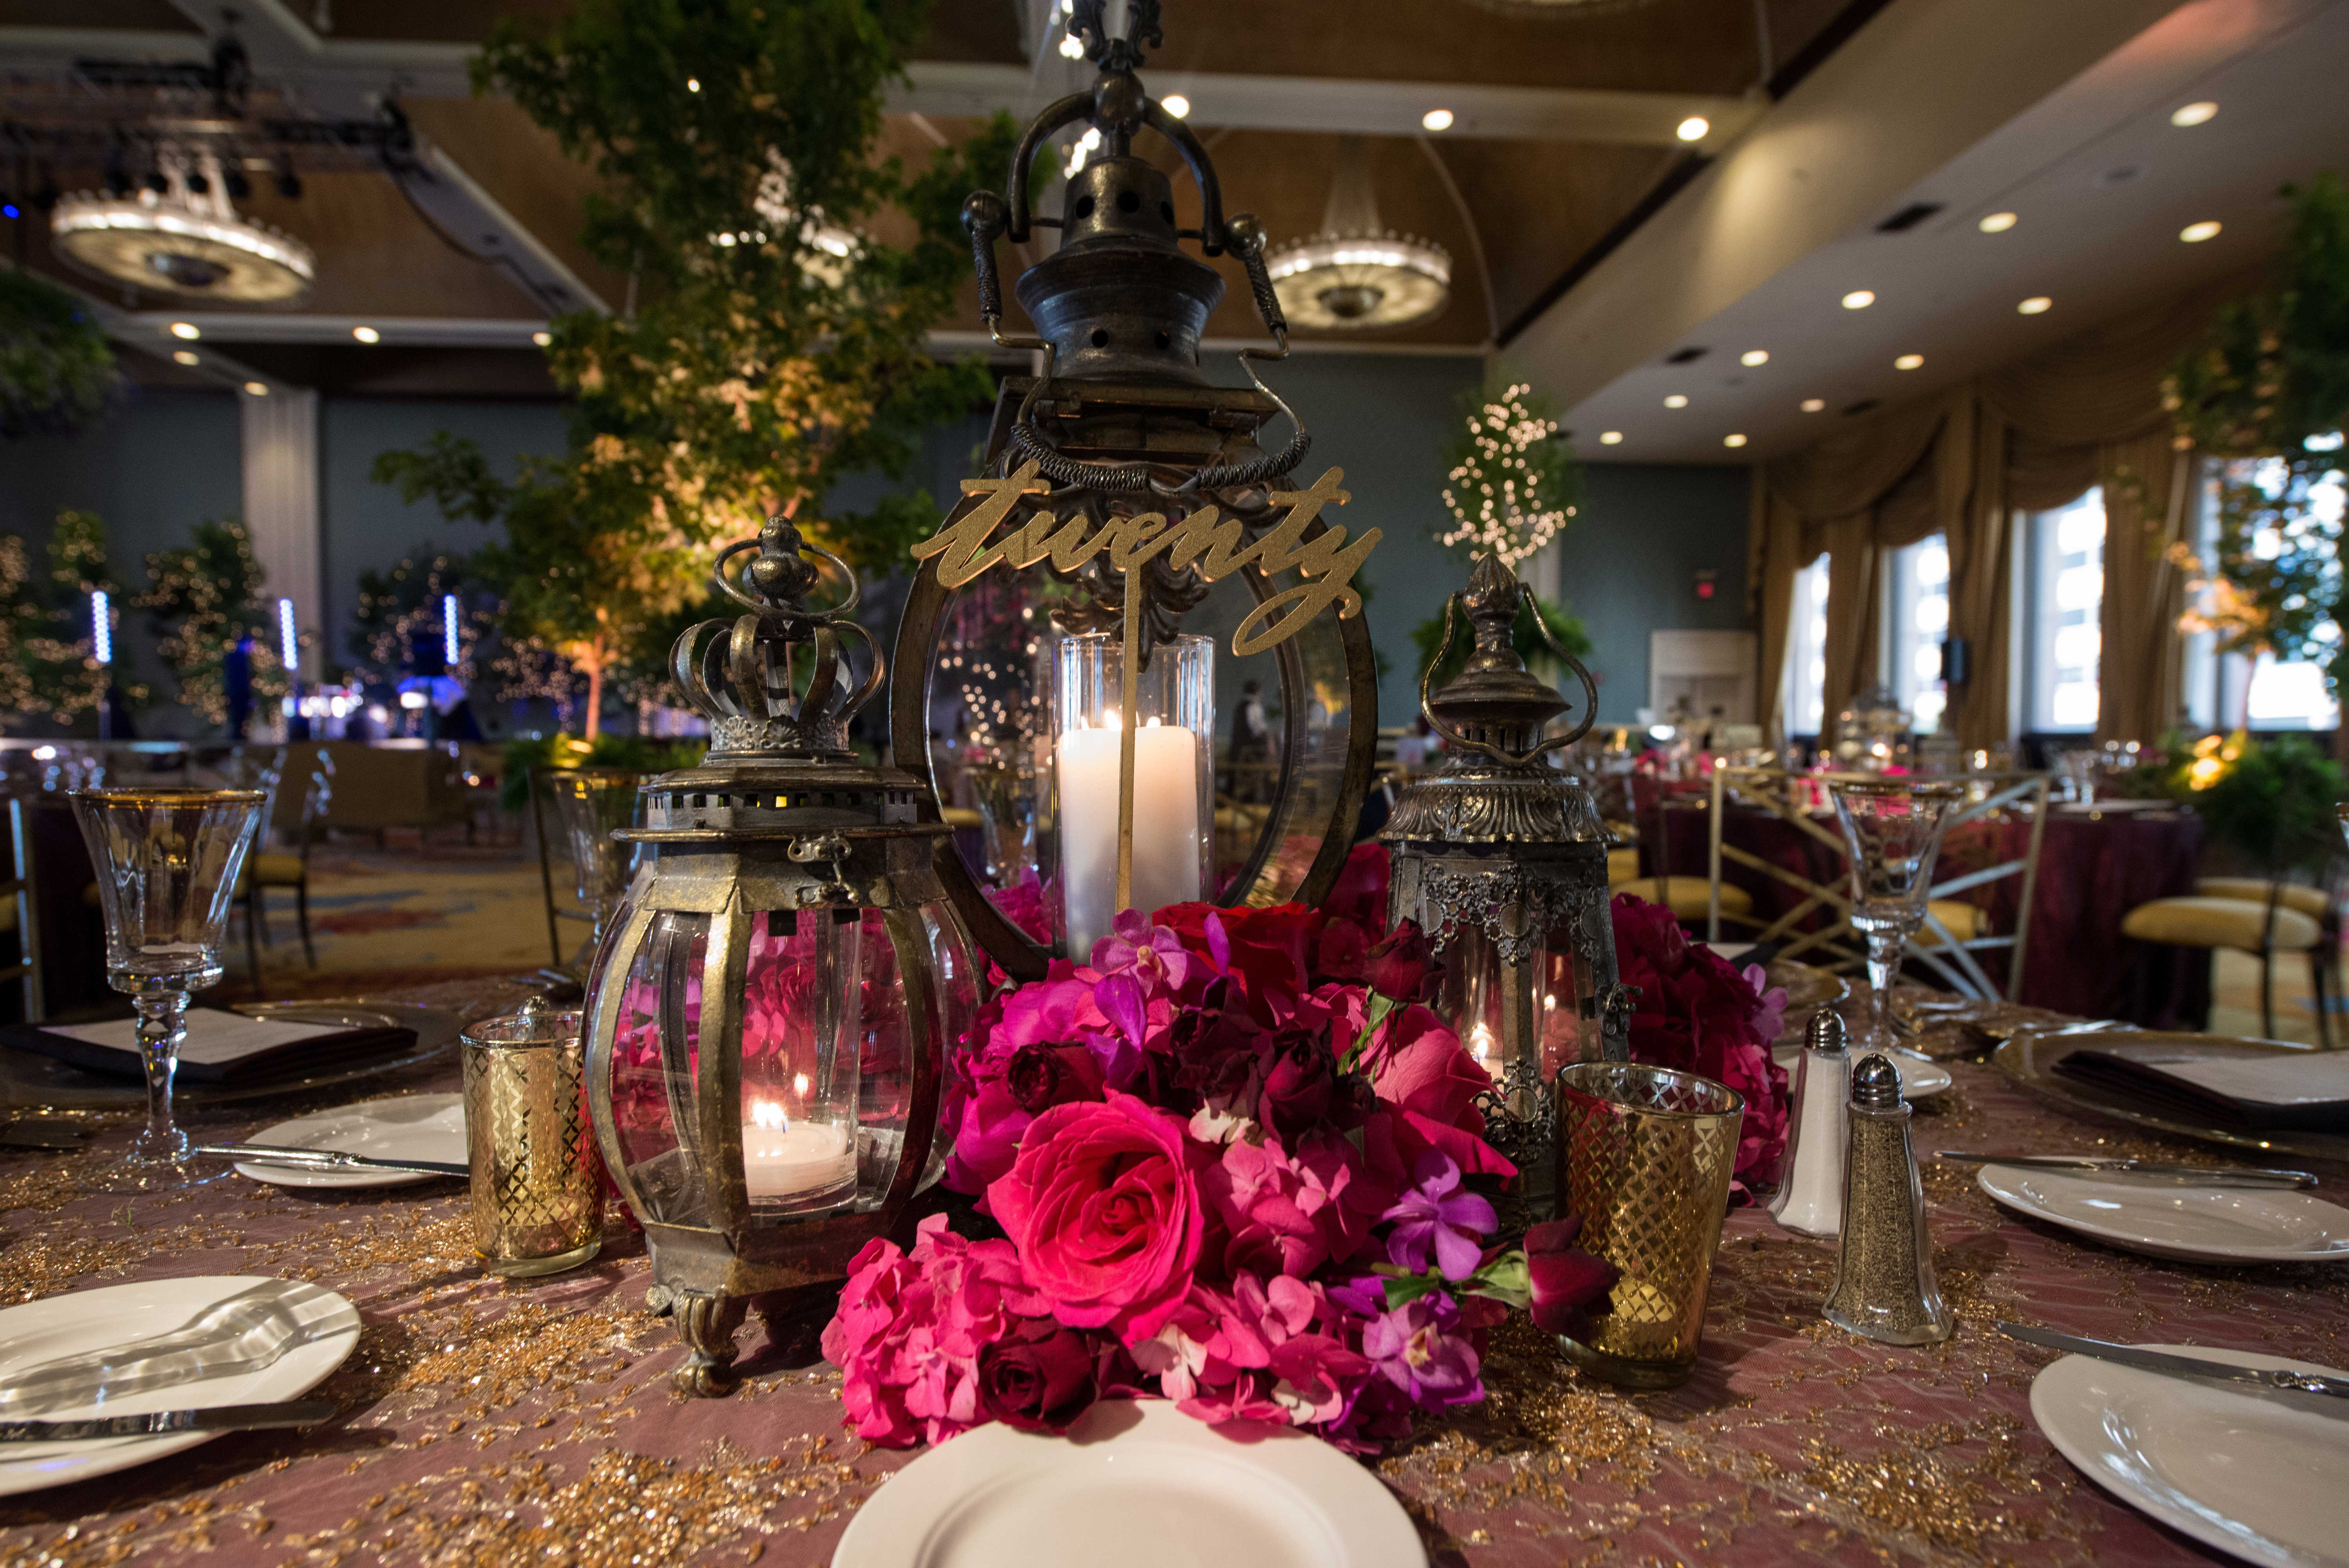 Interfaith wedding reception with dark and moody color palette